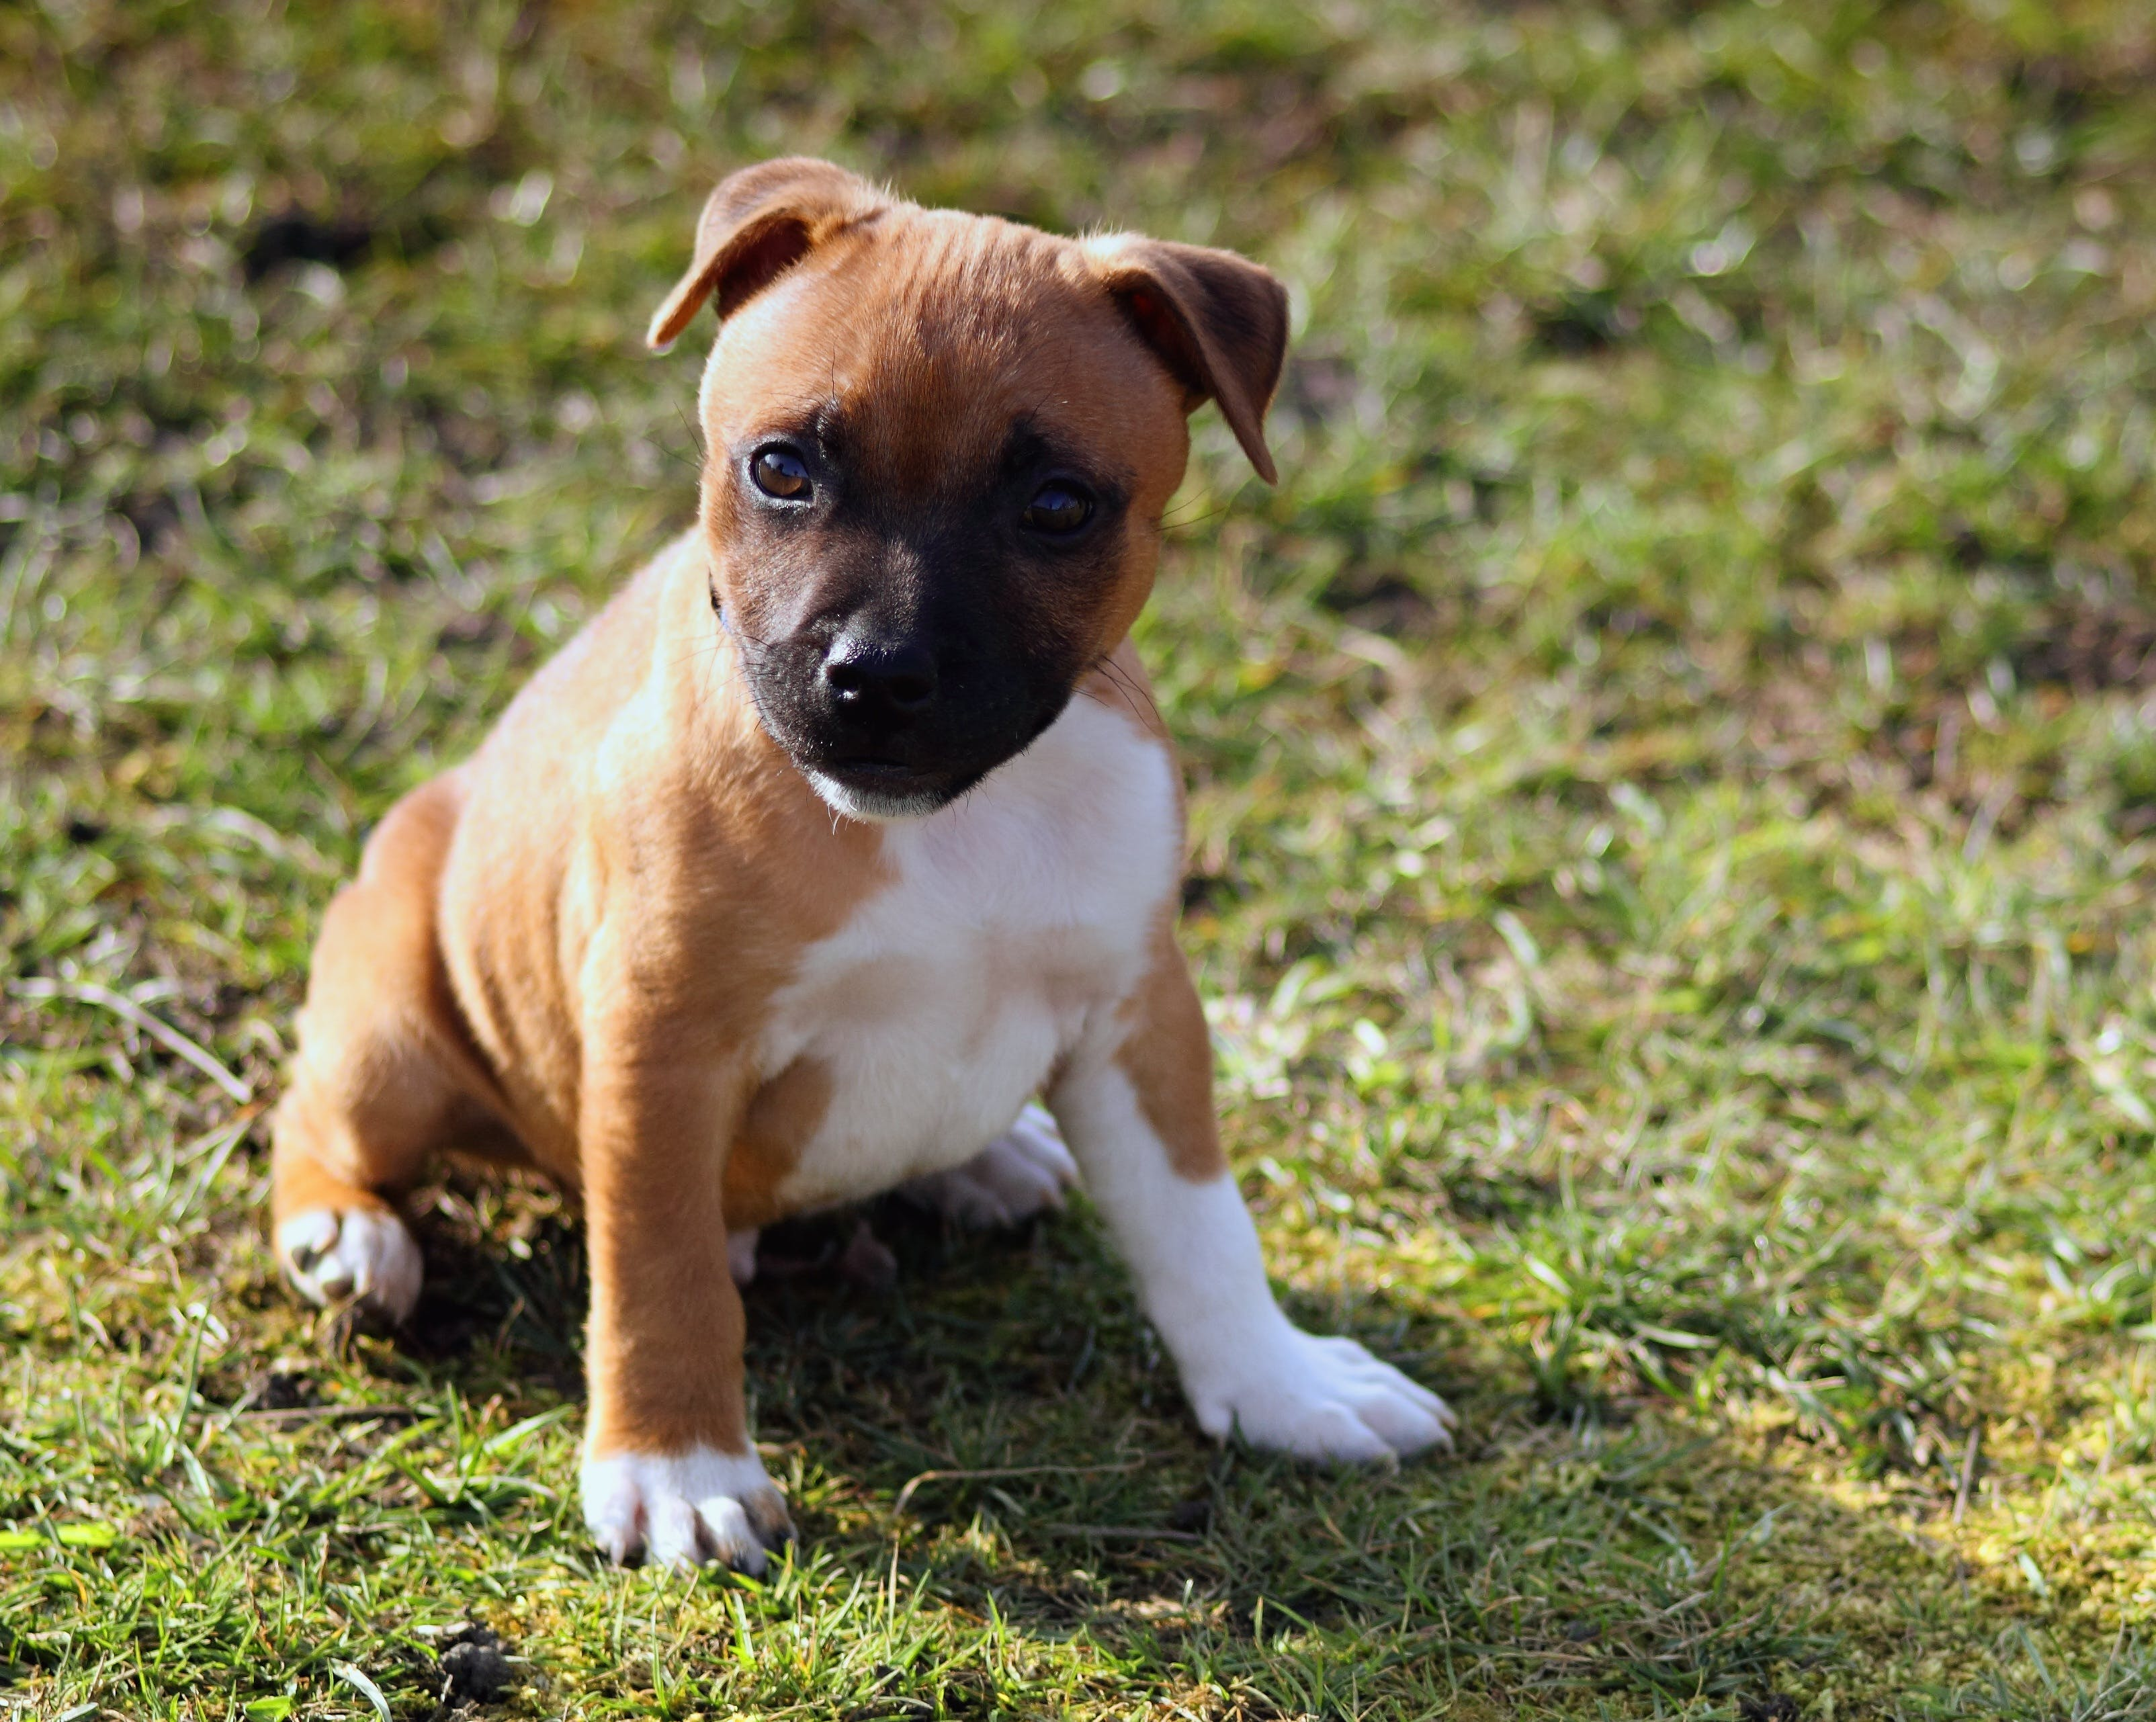 Selective Focus Photography of American Pit Bull Terrier Puppy Sitting on Grass Field